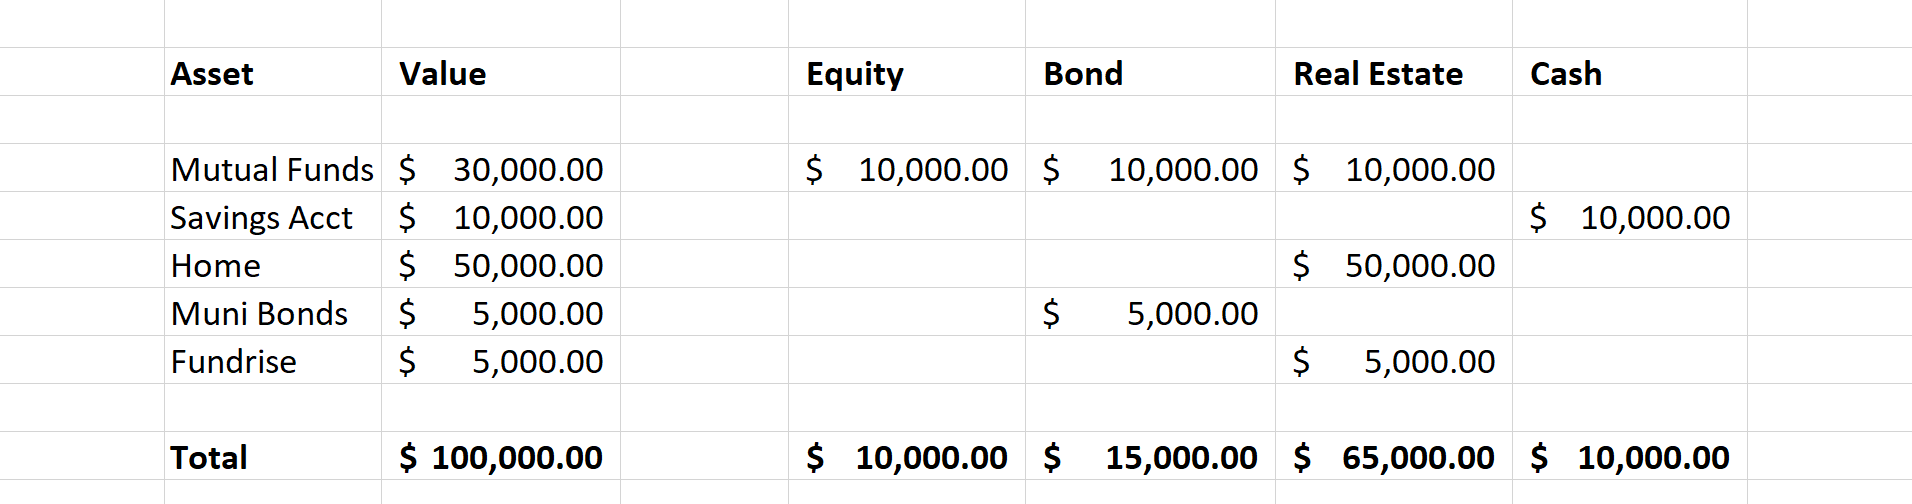 Asset Allocation Table 2